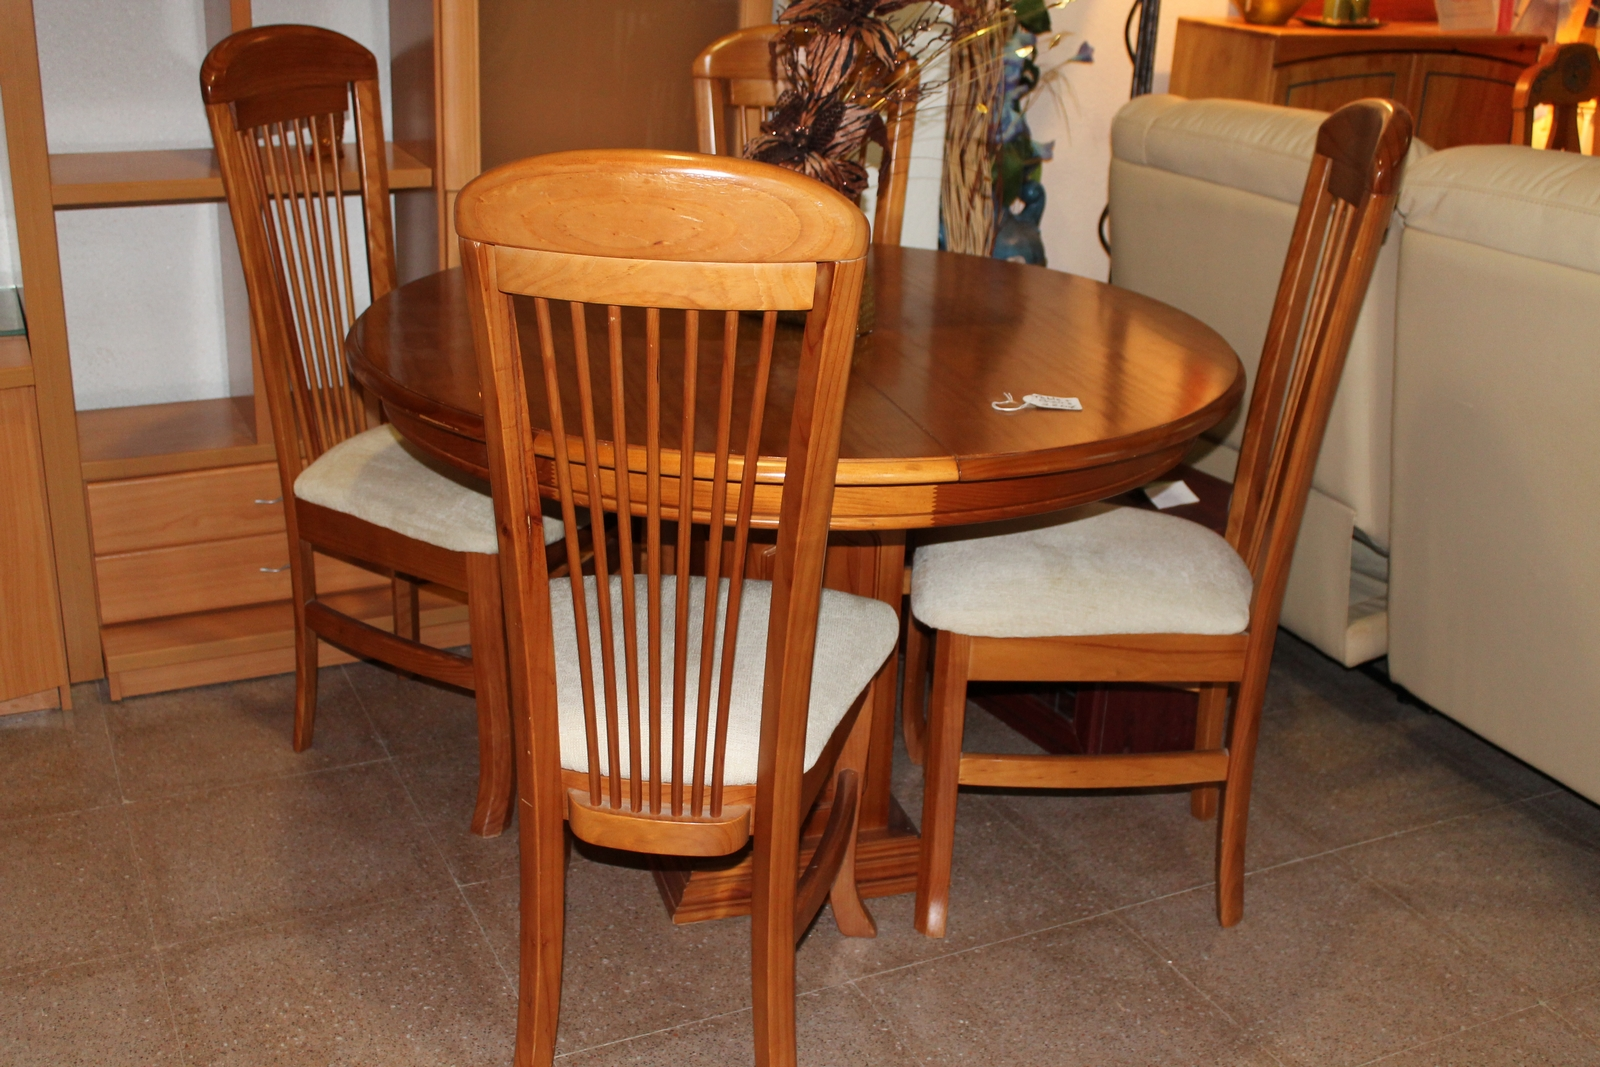 new2you furniture | second hand tables + chairs for the dining